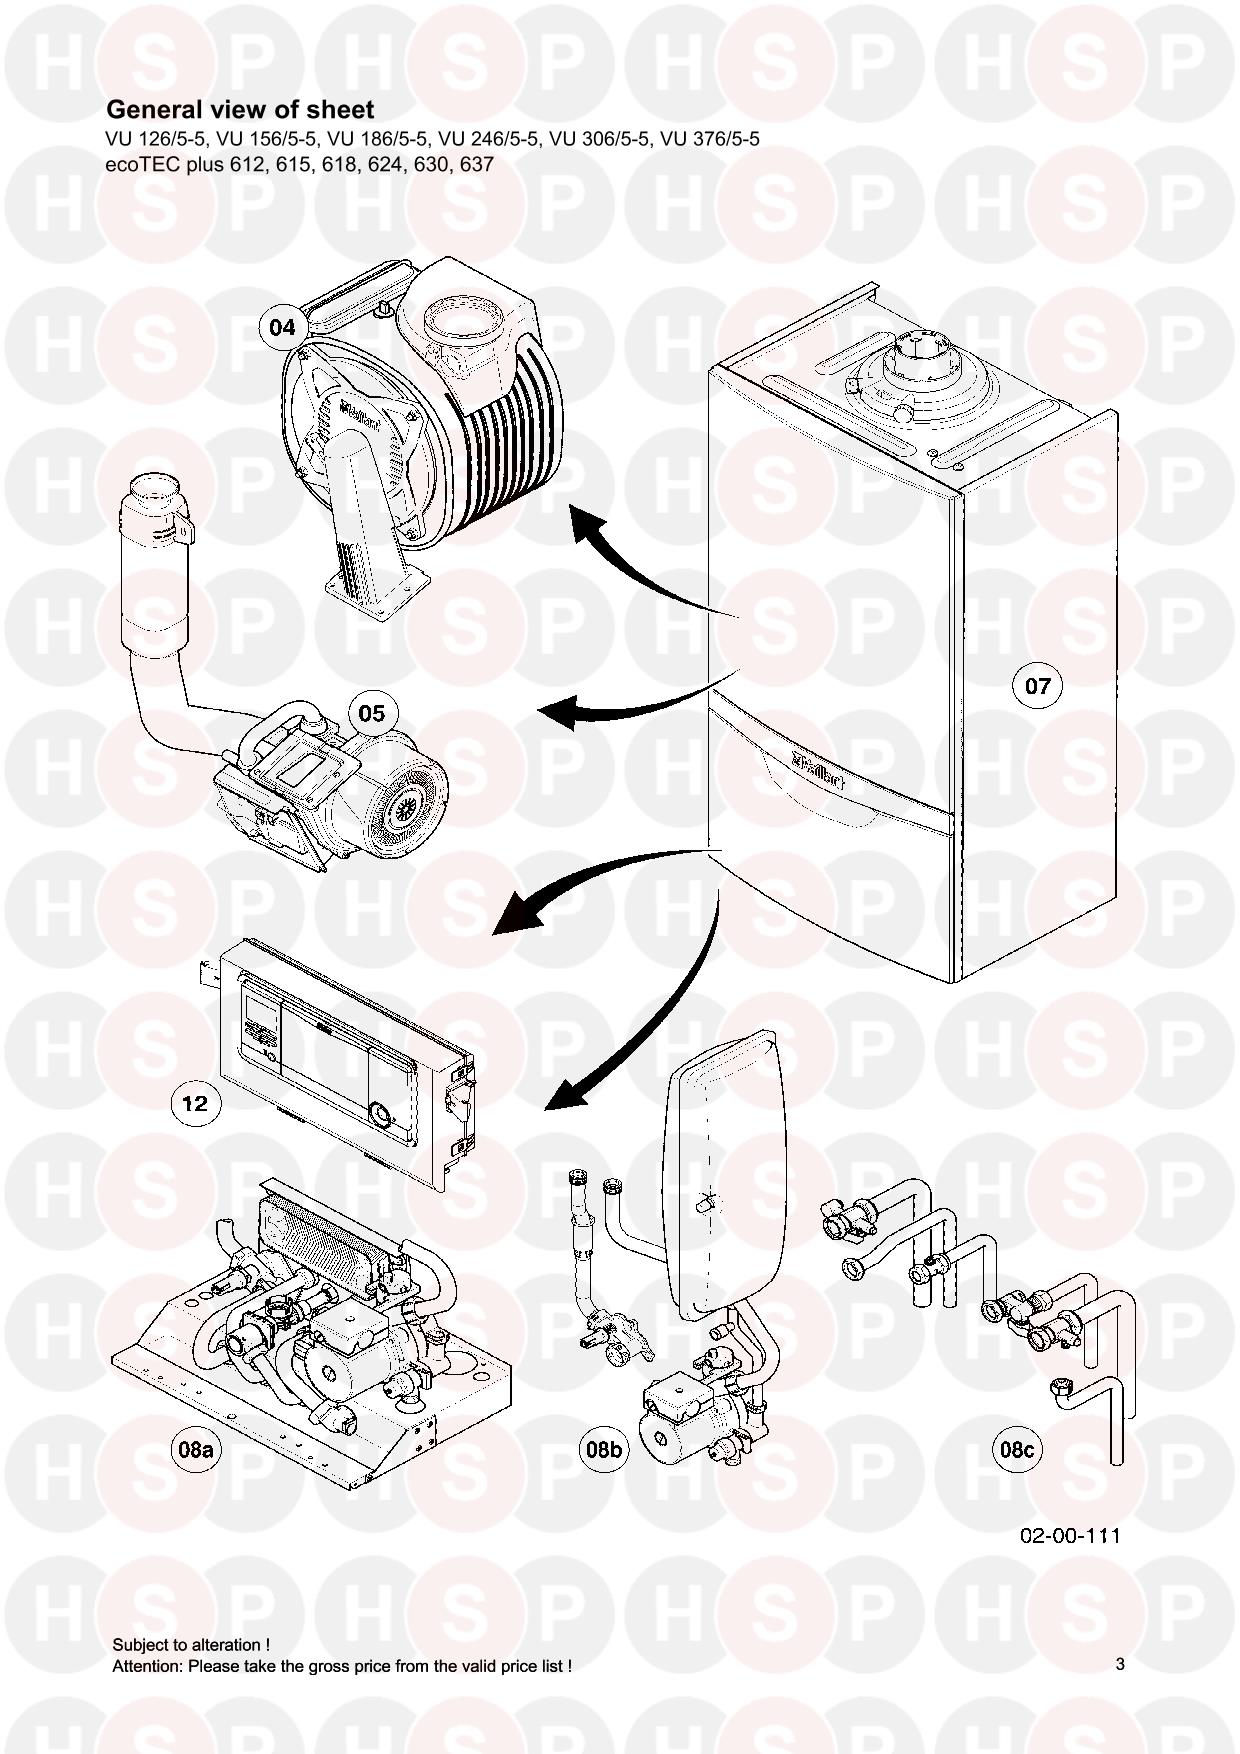 Vaillant ecotec plus 630 wiring cause and affect diagram wiring vaillant ecotec plus 831 wiring diagram the best wiring diagram 2017 imagehandler vaillant ecotec plus 831 asfbconference2016 Images